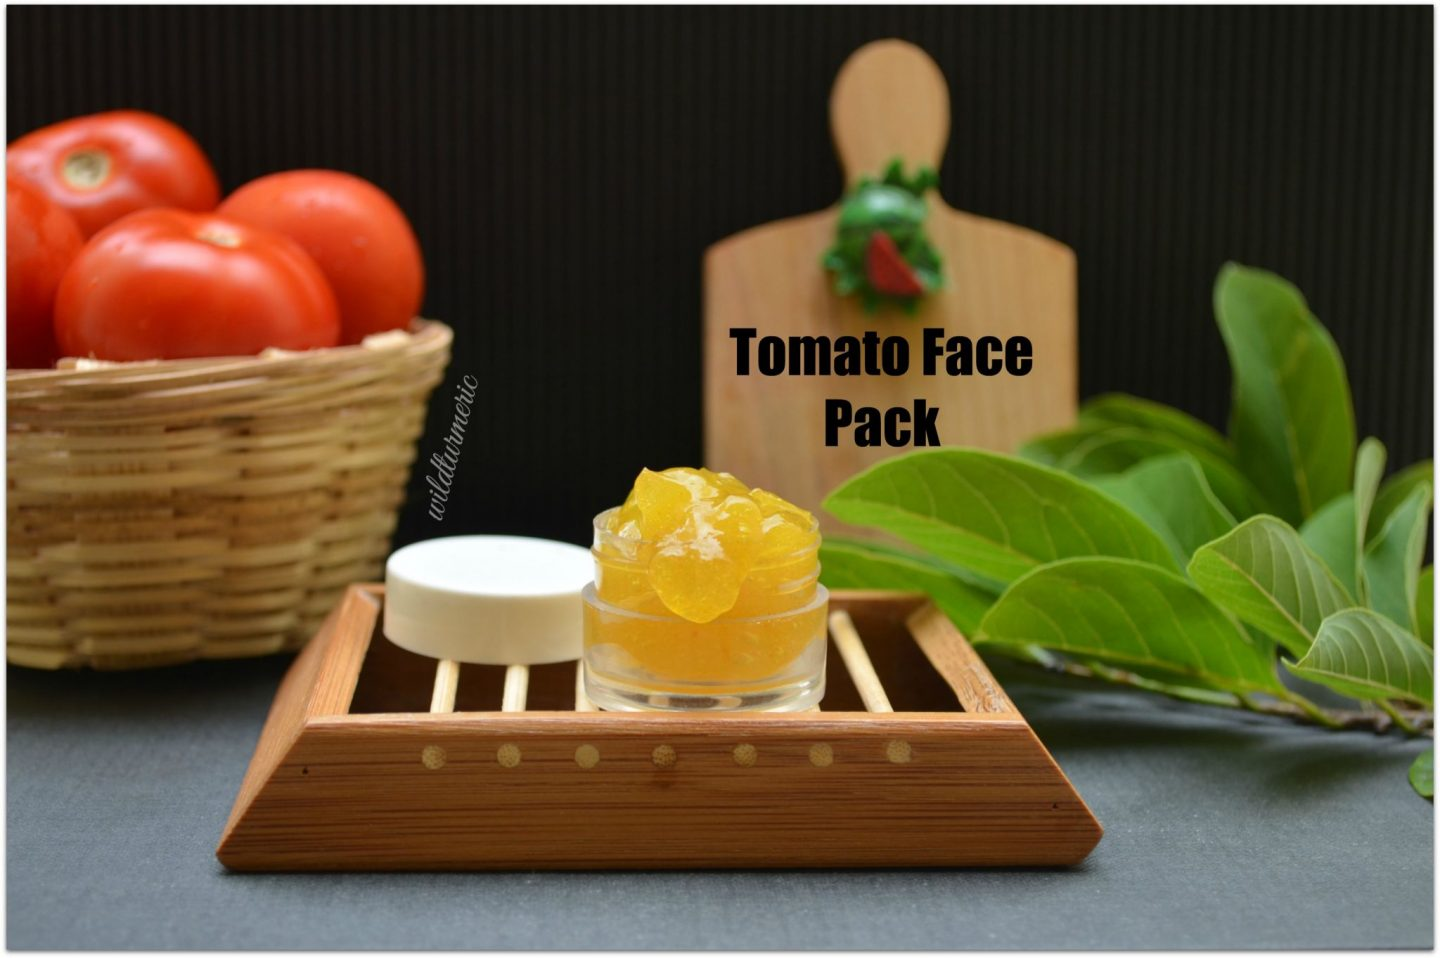 Homemade tomato face masks